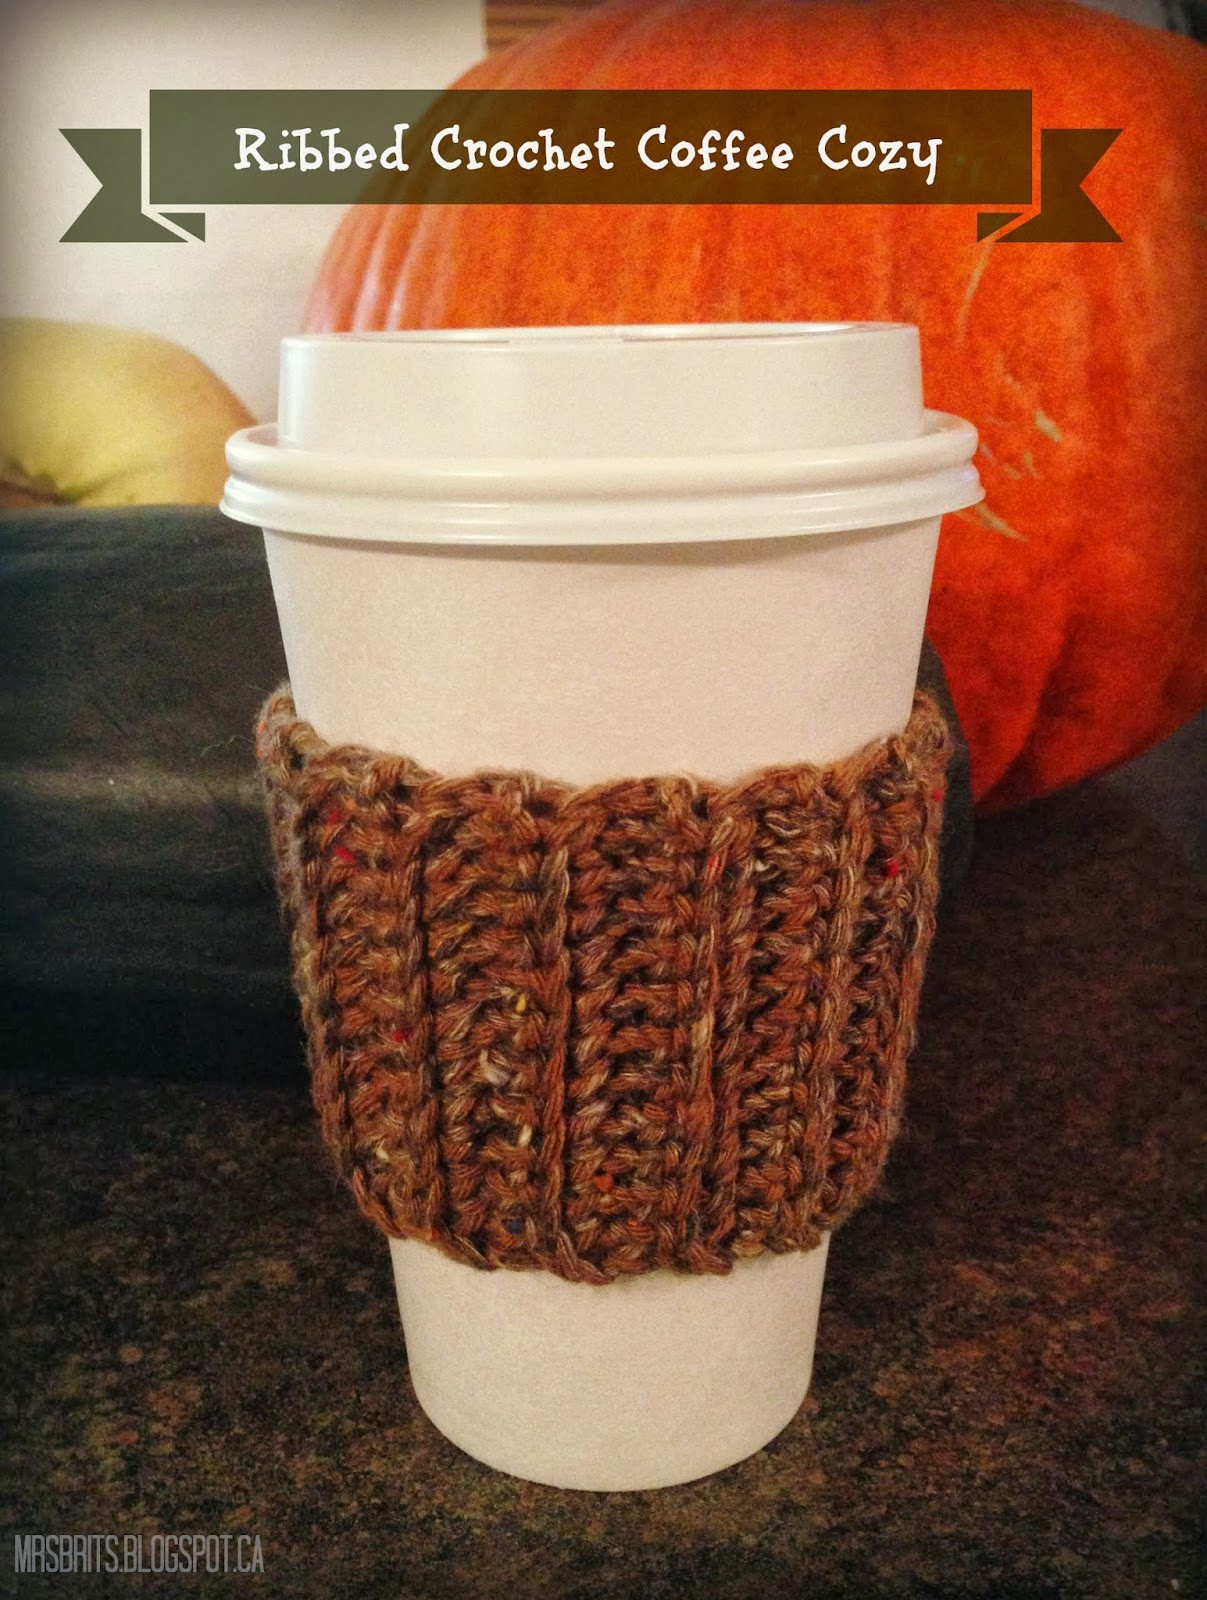 Crochet Coffee Cup Cozy Unique Mrsbrits Ribbed Coffee Cozy Crochet Pattern Of Crochet Coffee Cup Cozy Awesome Crochet Coffee Cozy Amy Latta Creations